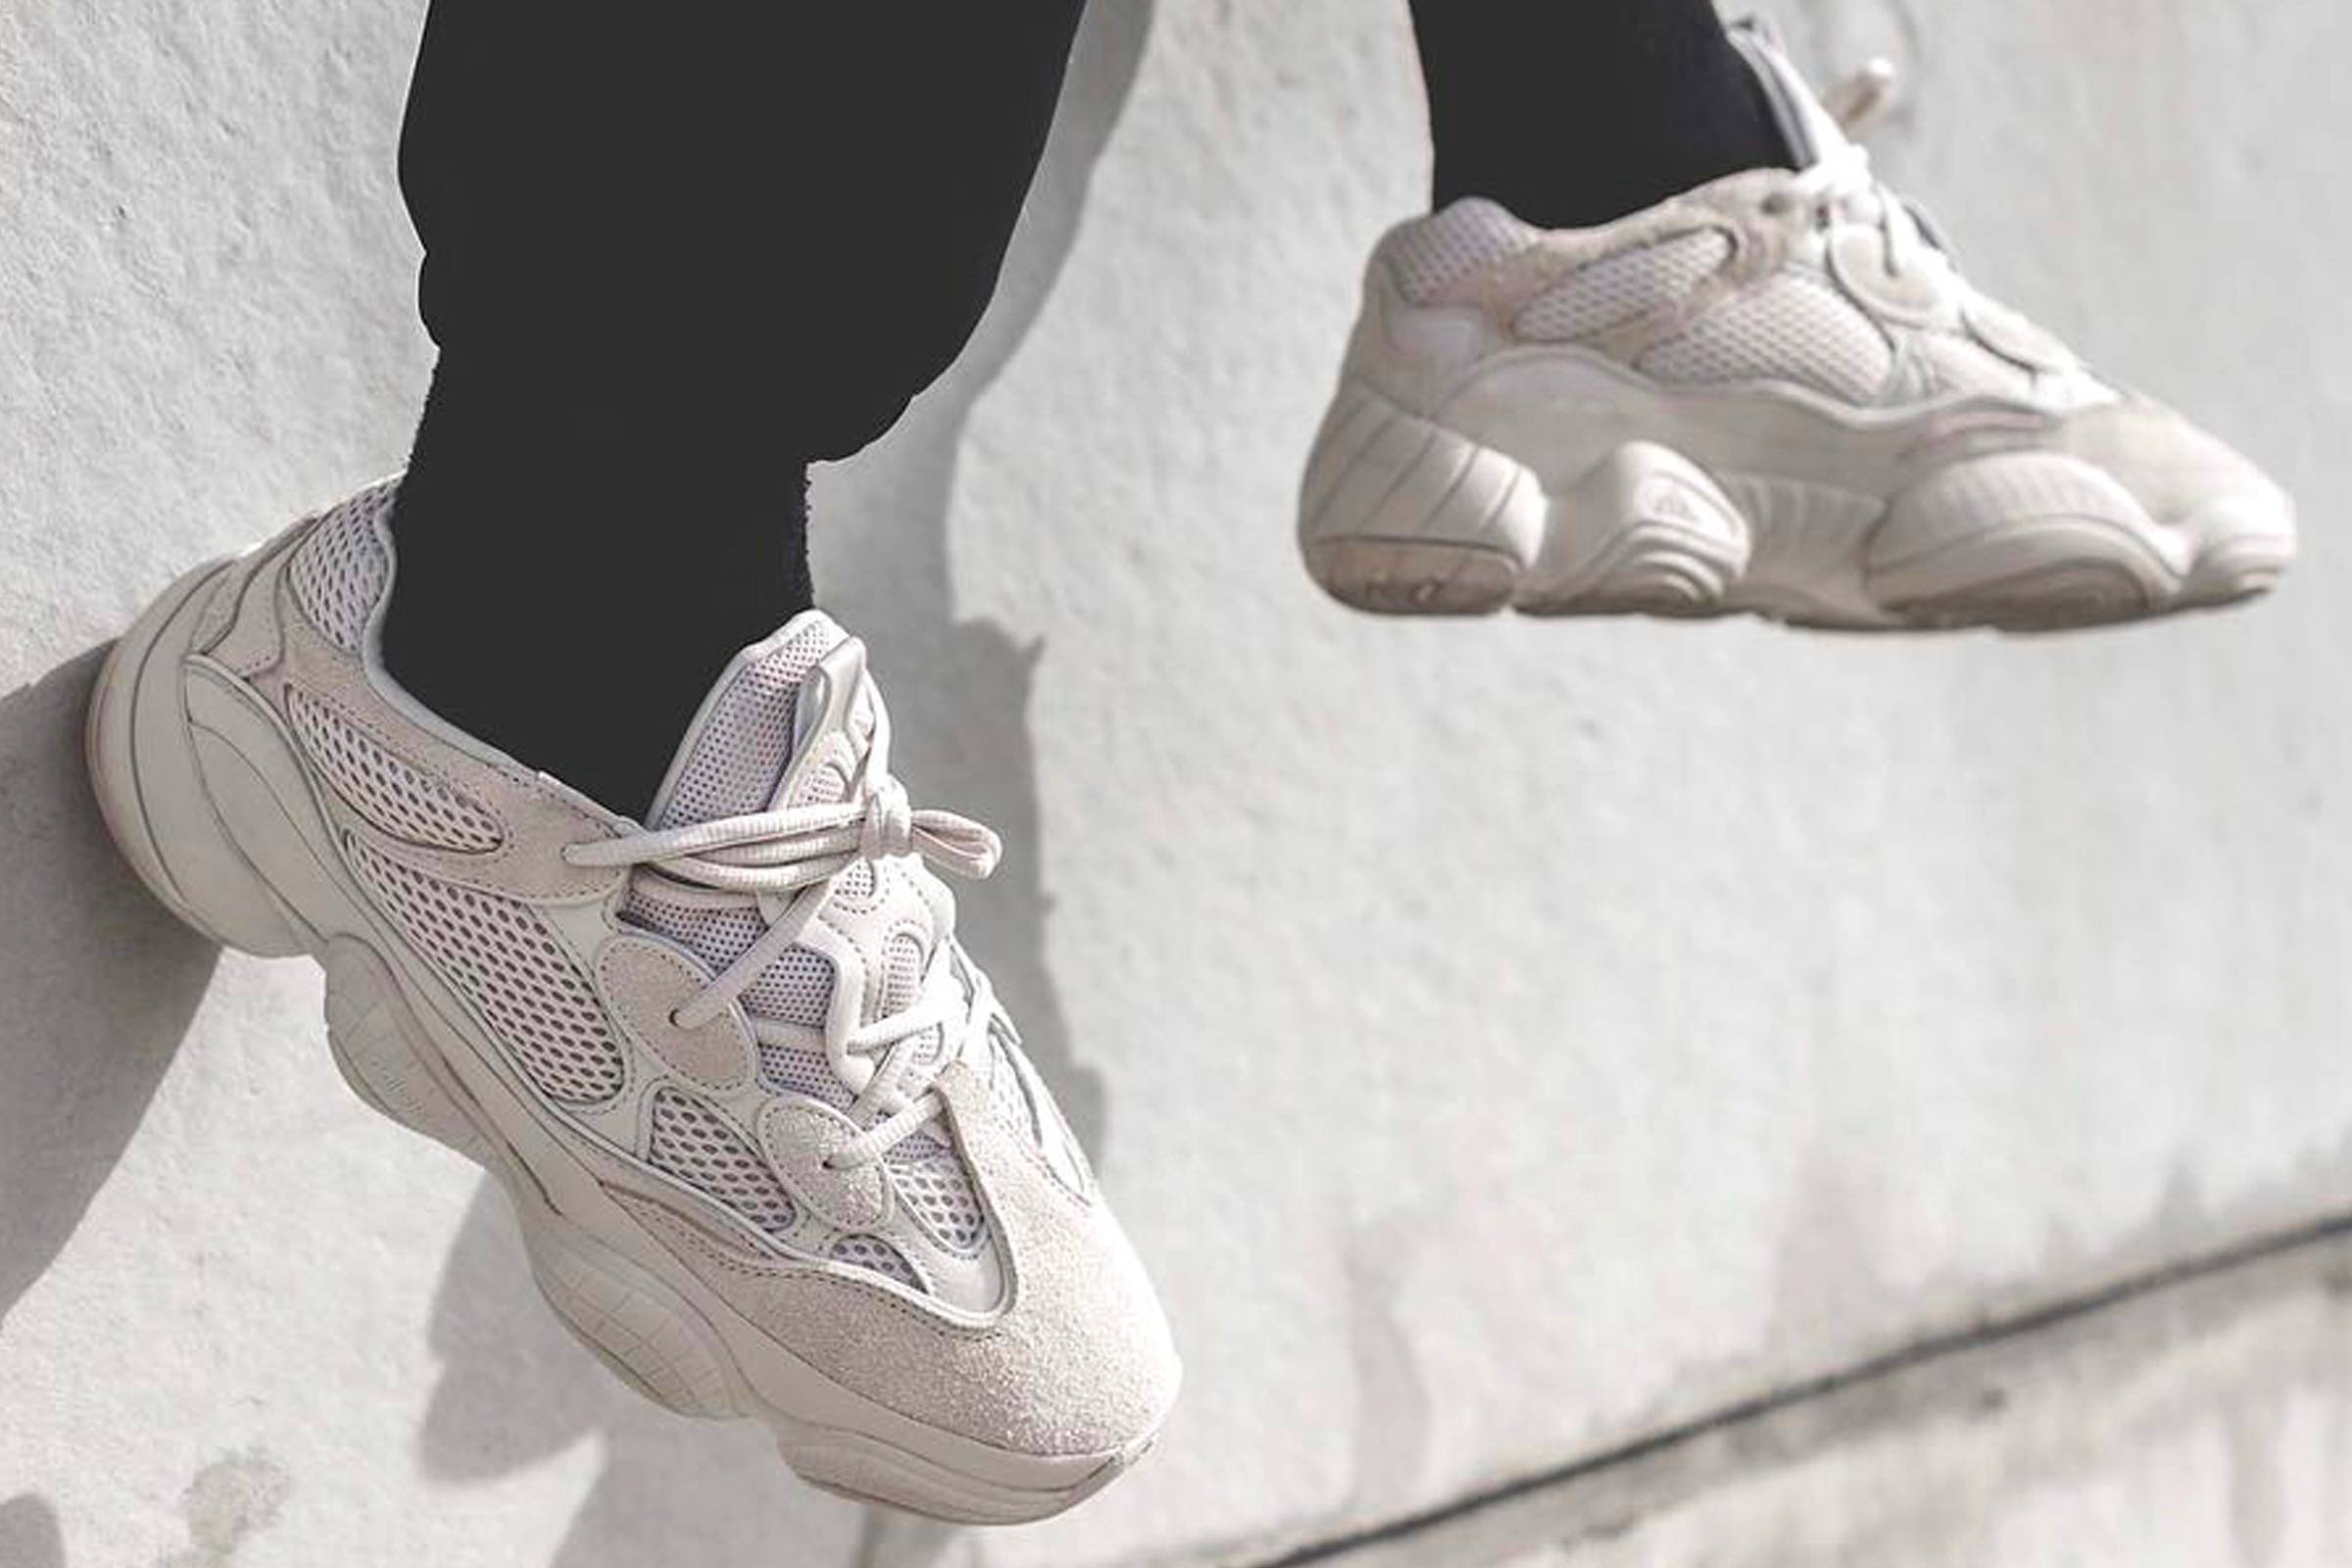 42ec40ac The Yeezy Desert Rat 500